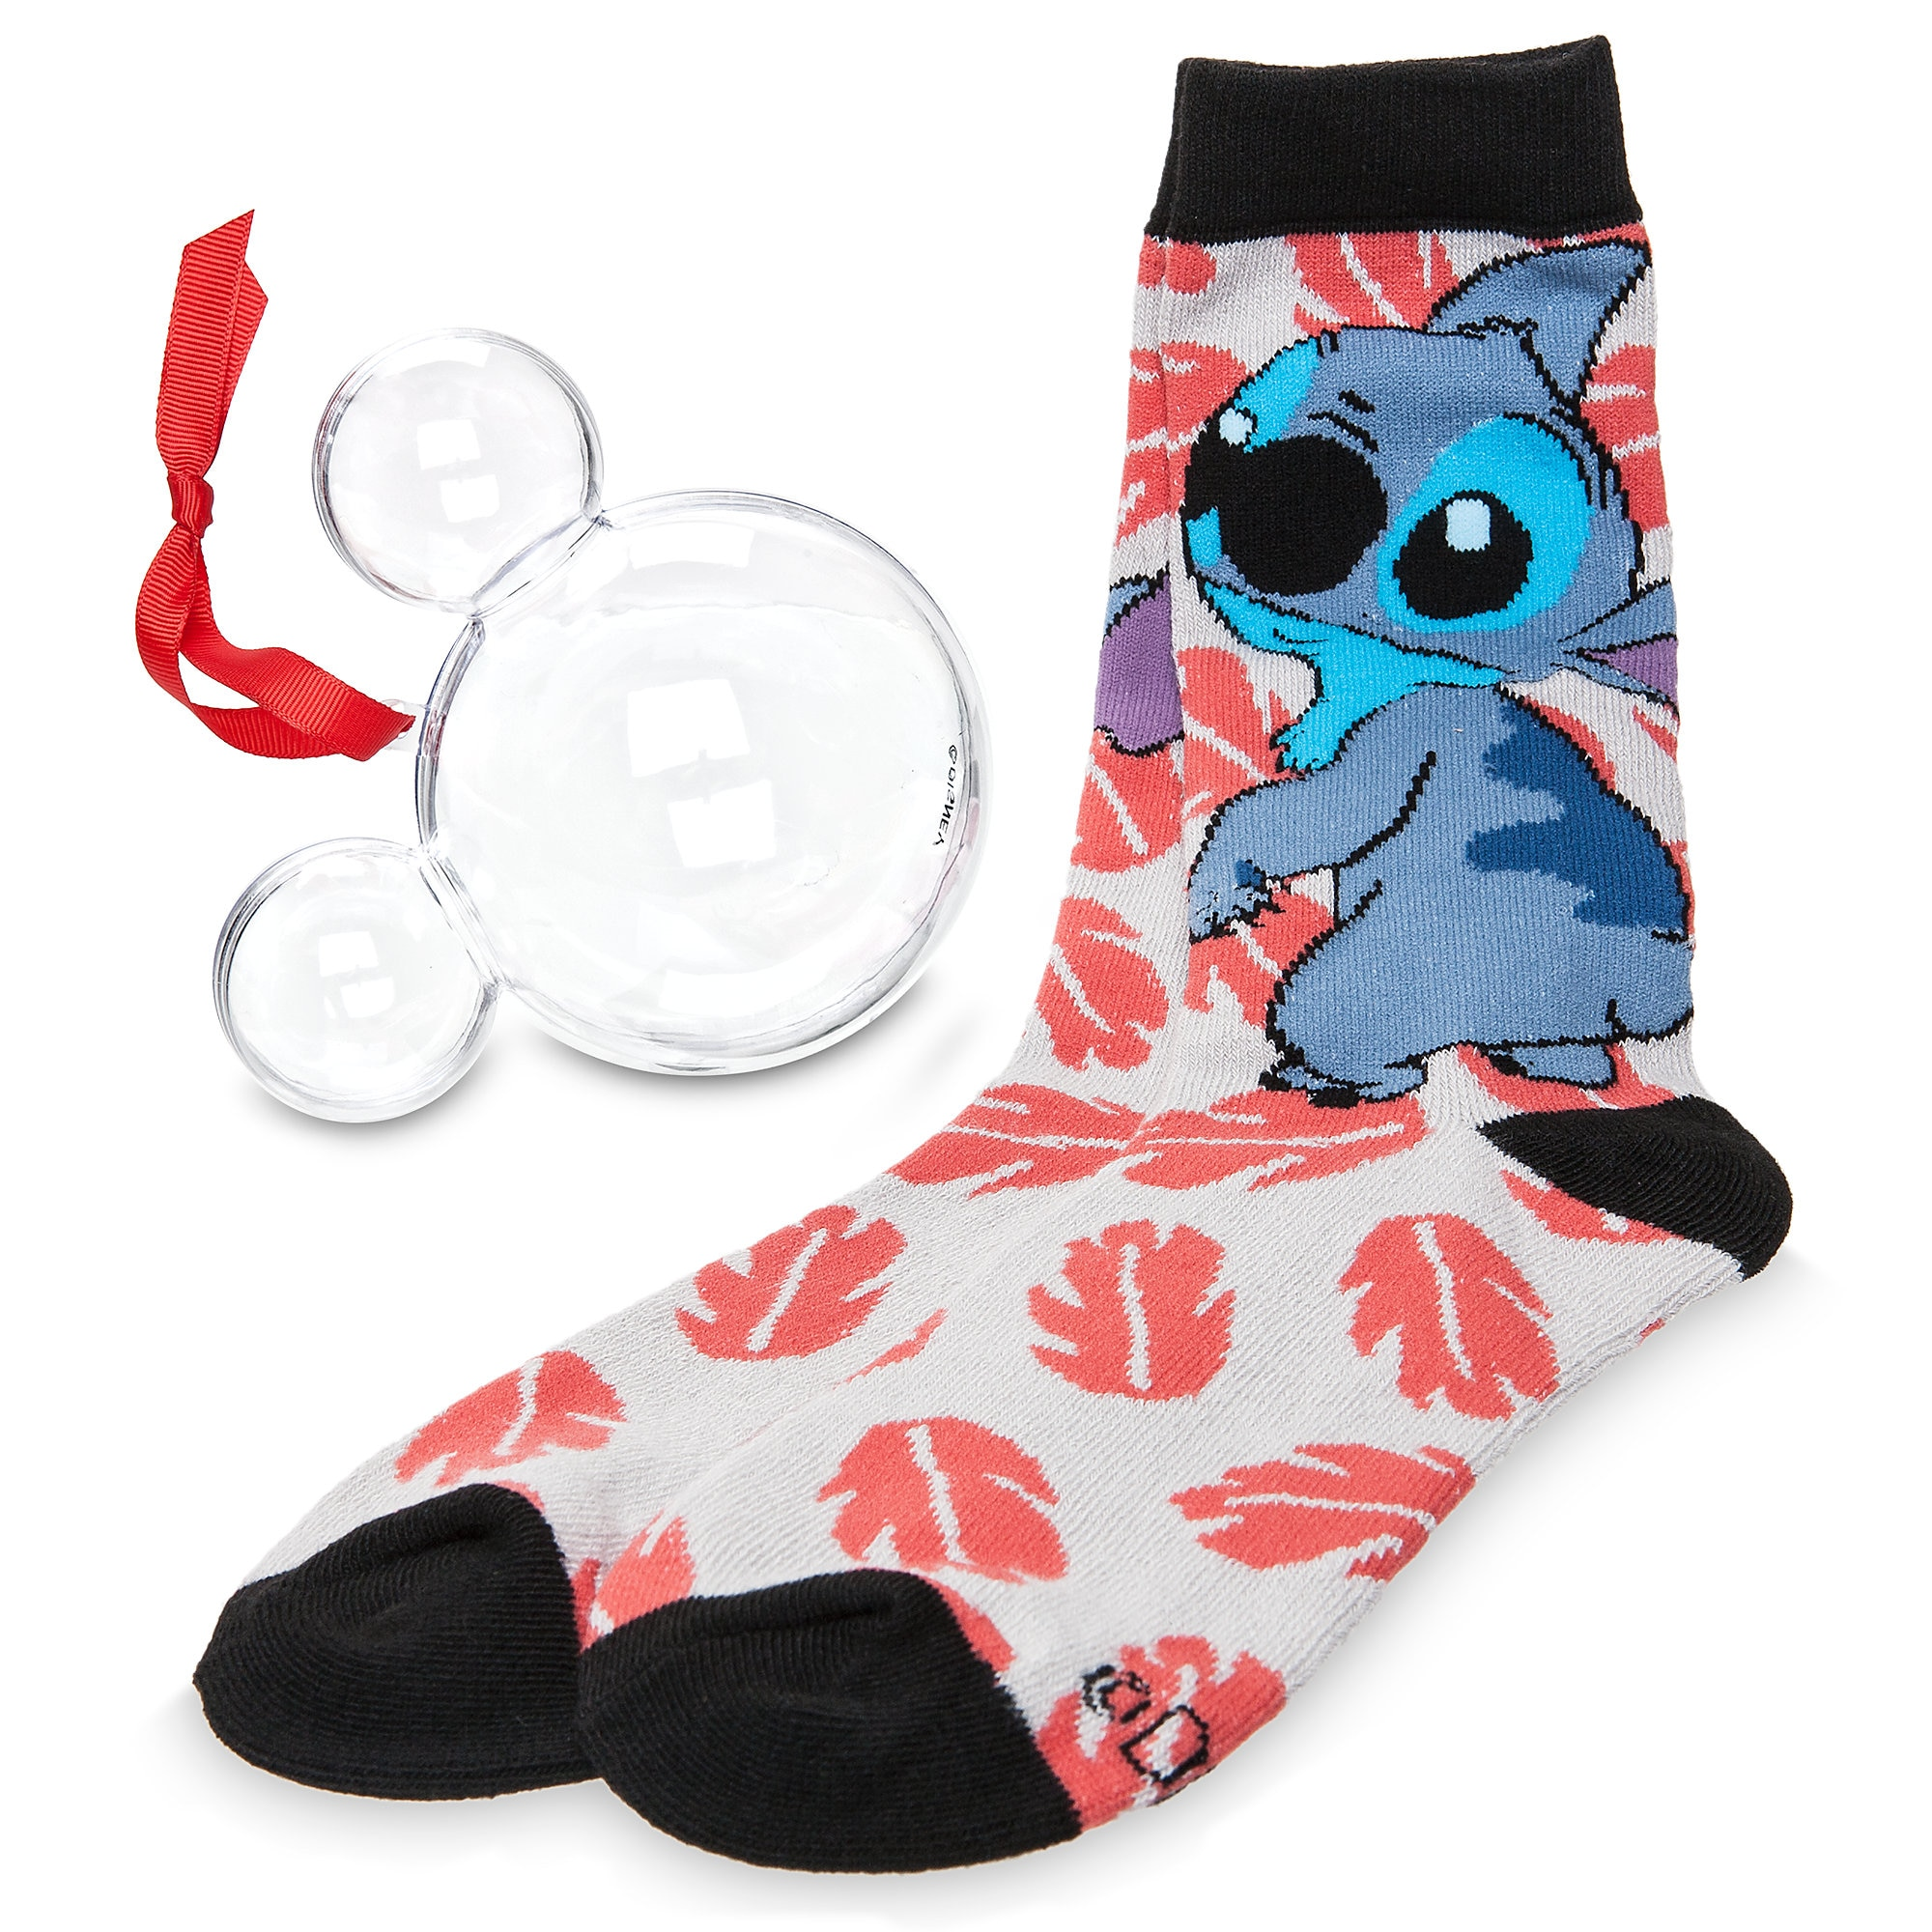 Stitch Socks in Ornament - Adults